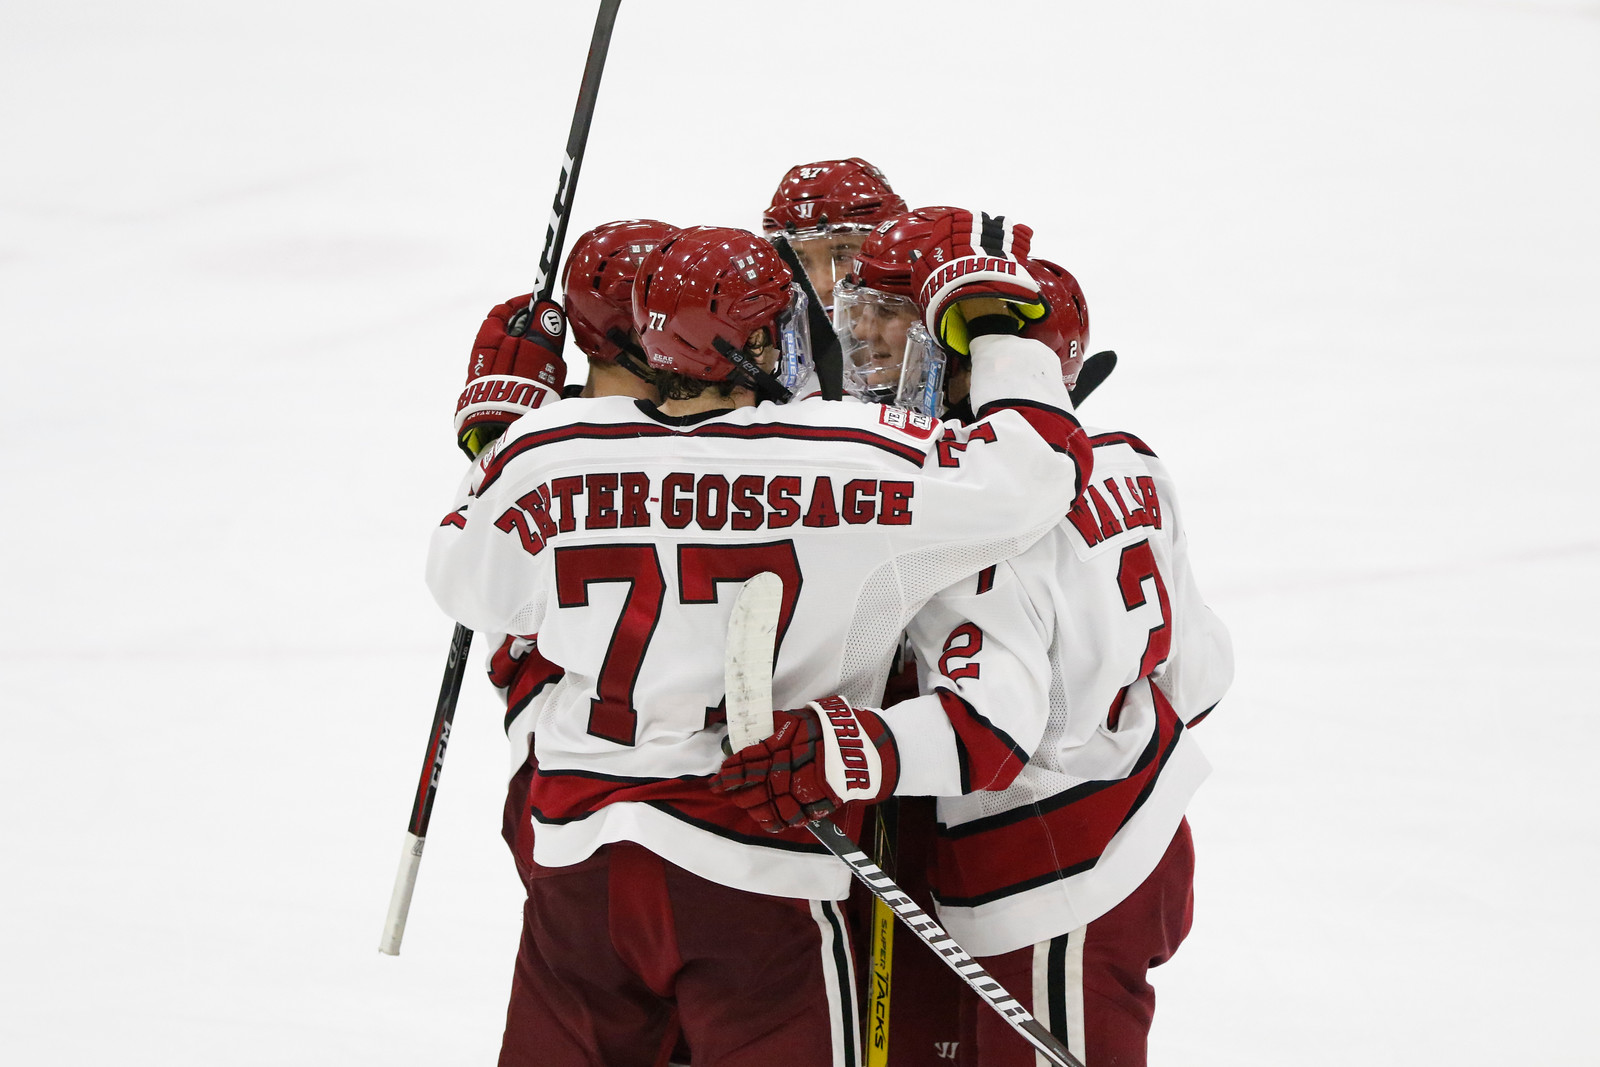 While the Crimson only captured two of the desired four standings points, importantly it has clinched a first-round bye in the ECAC playoffs.